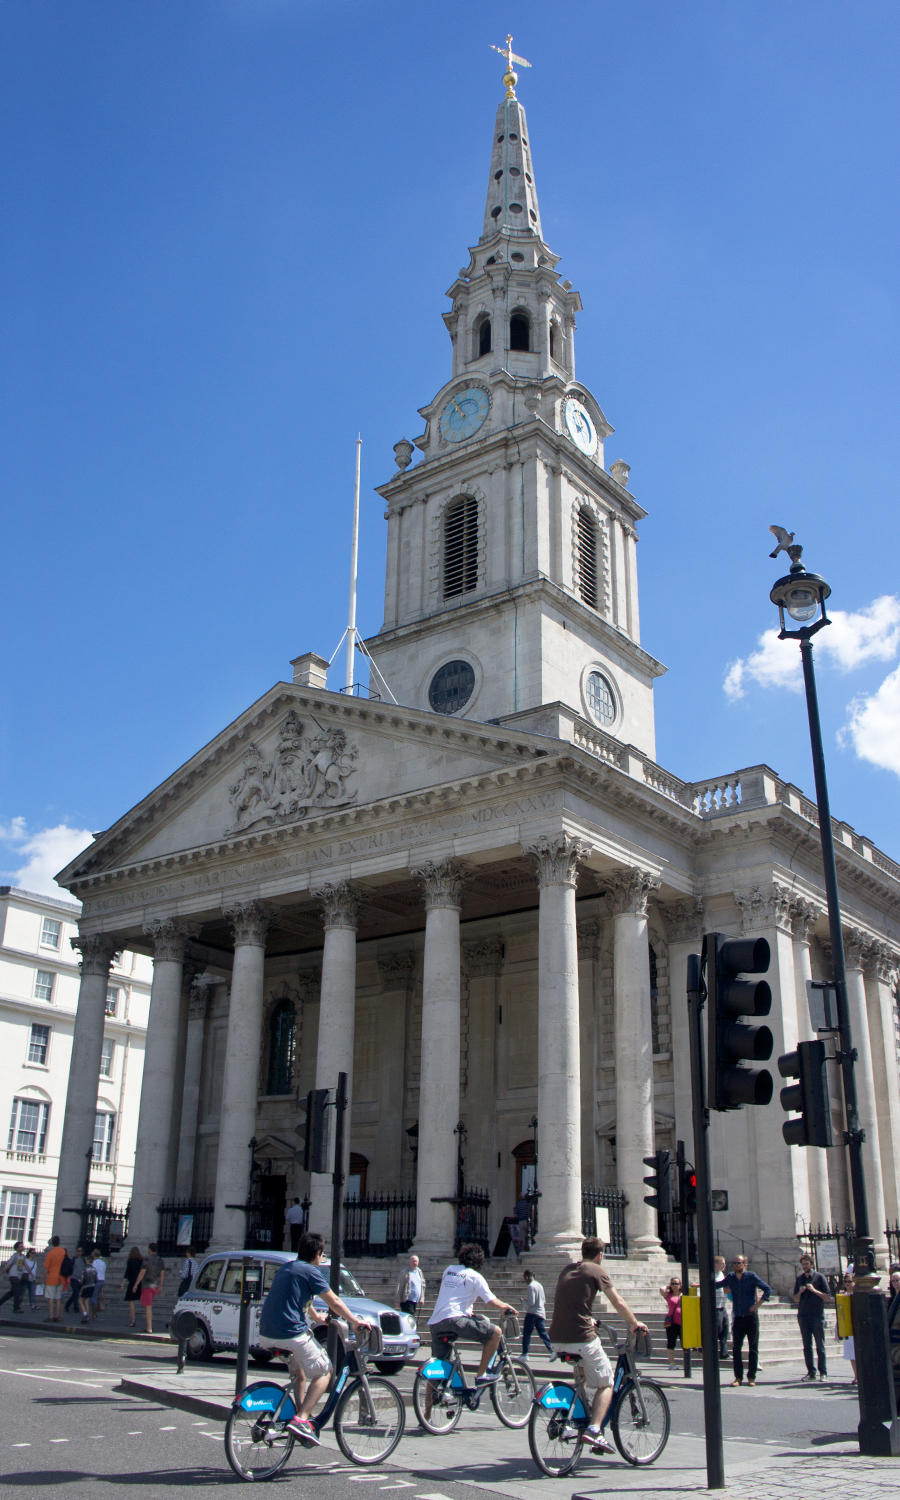 2014_europe_04_st-martin-in-the-fields